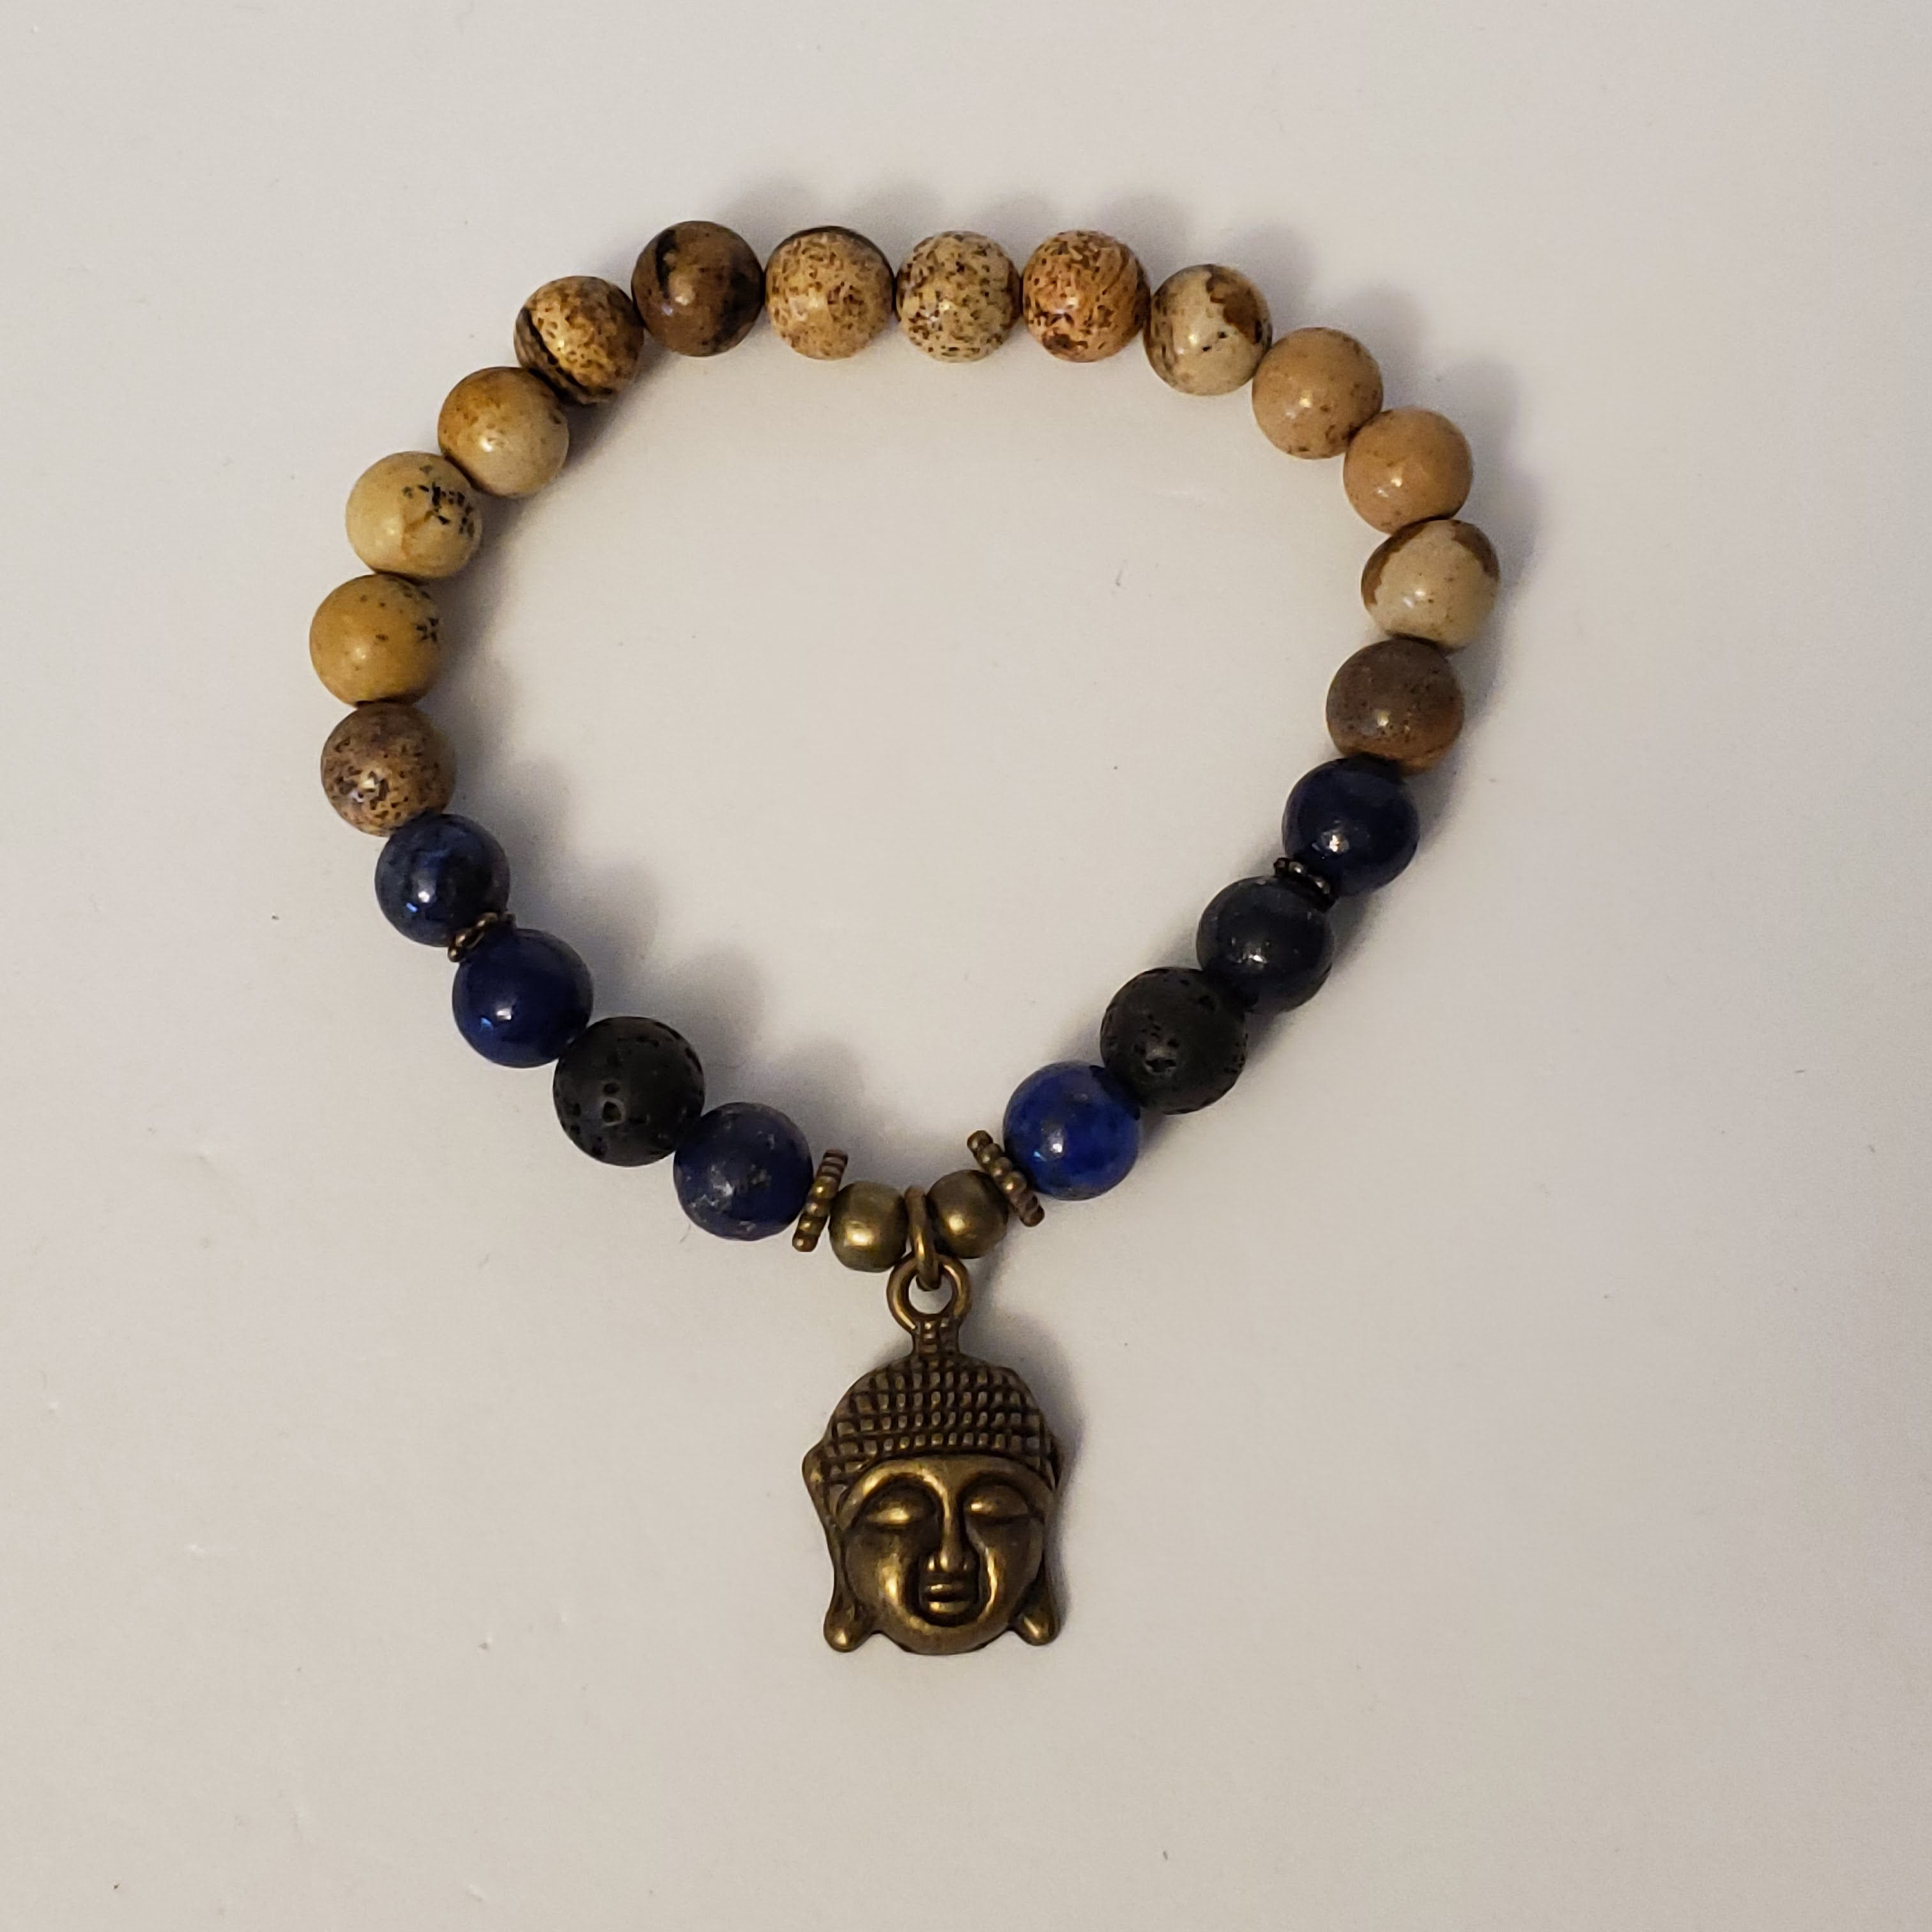 Brown Map Stone and Blue Lapis Lazuli - Size Medium